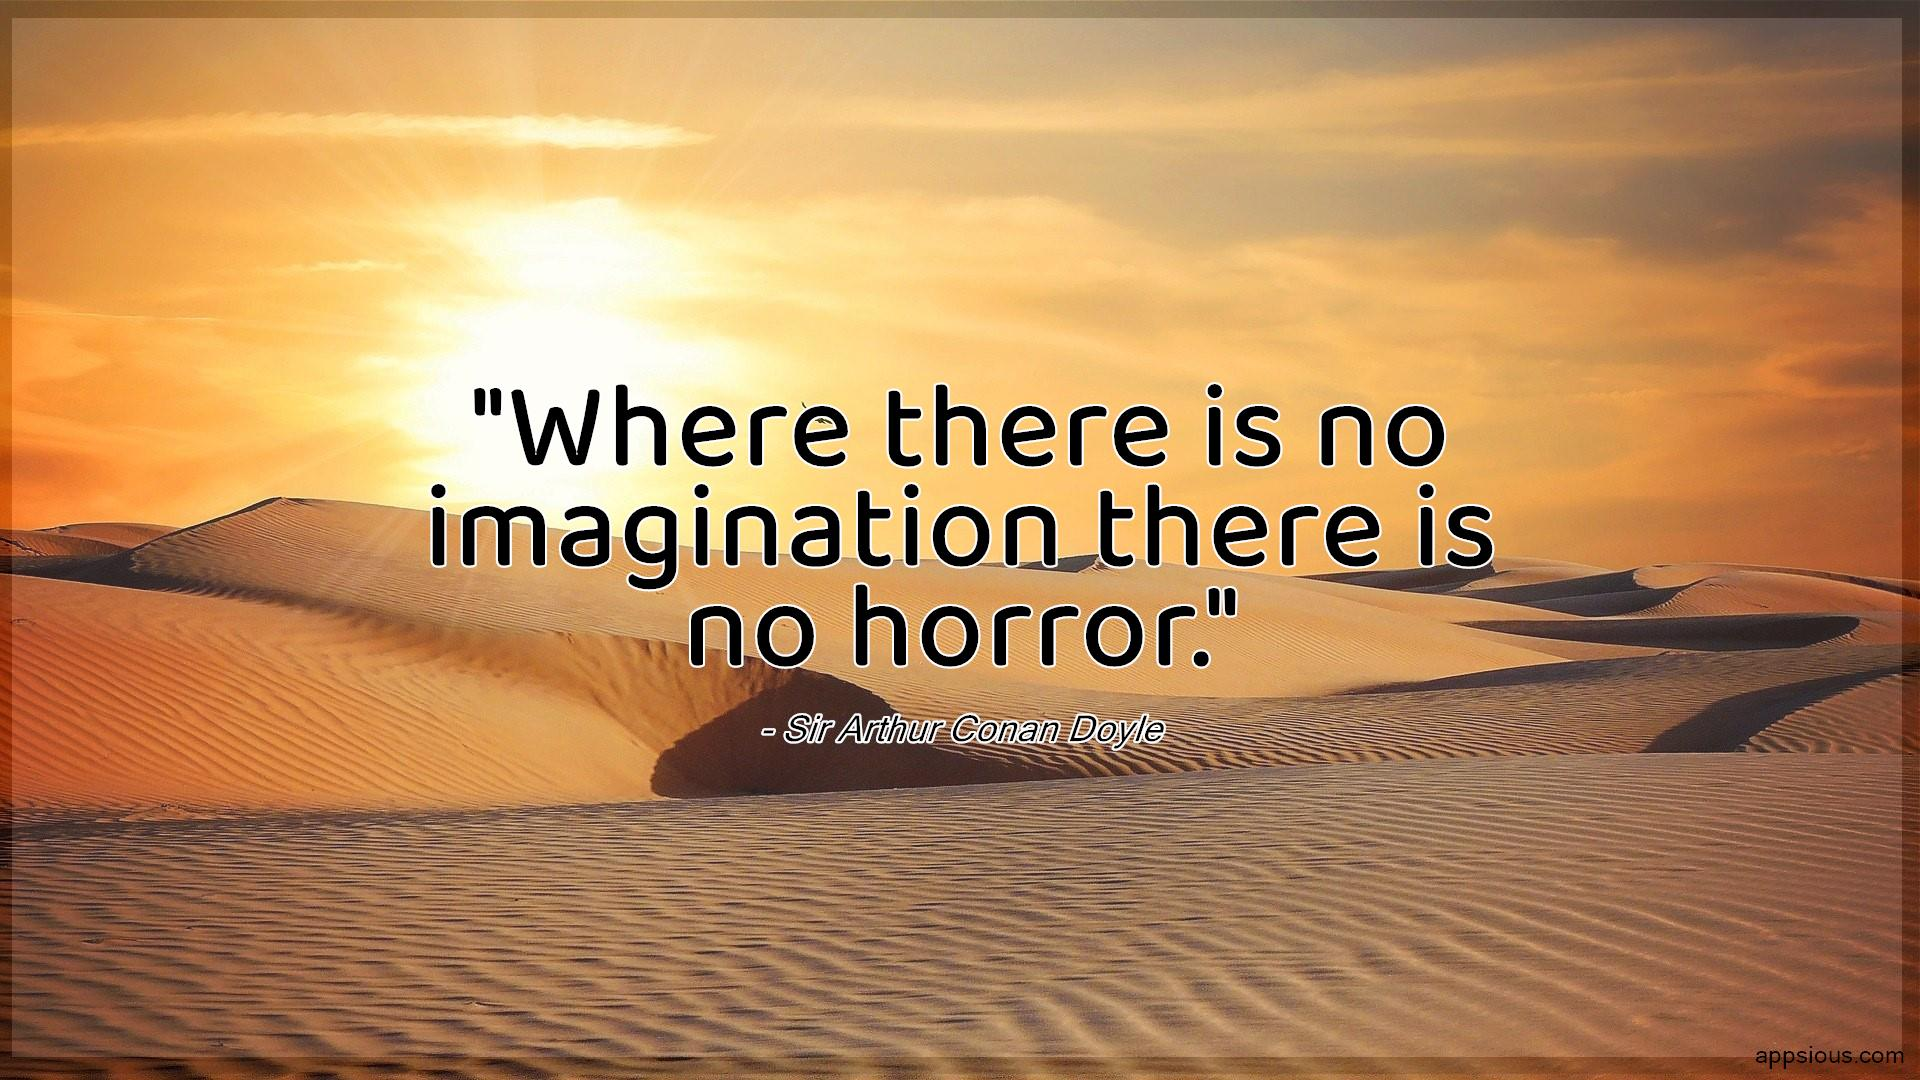 Where there is no imagination there is no horror.